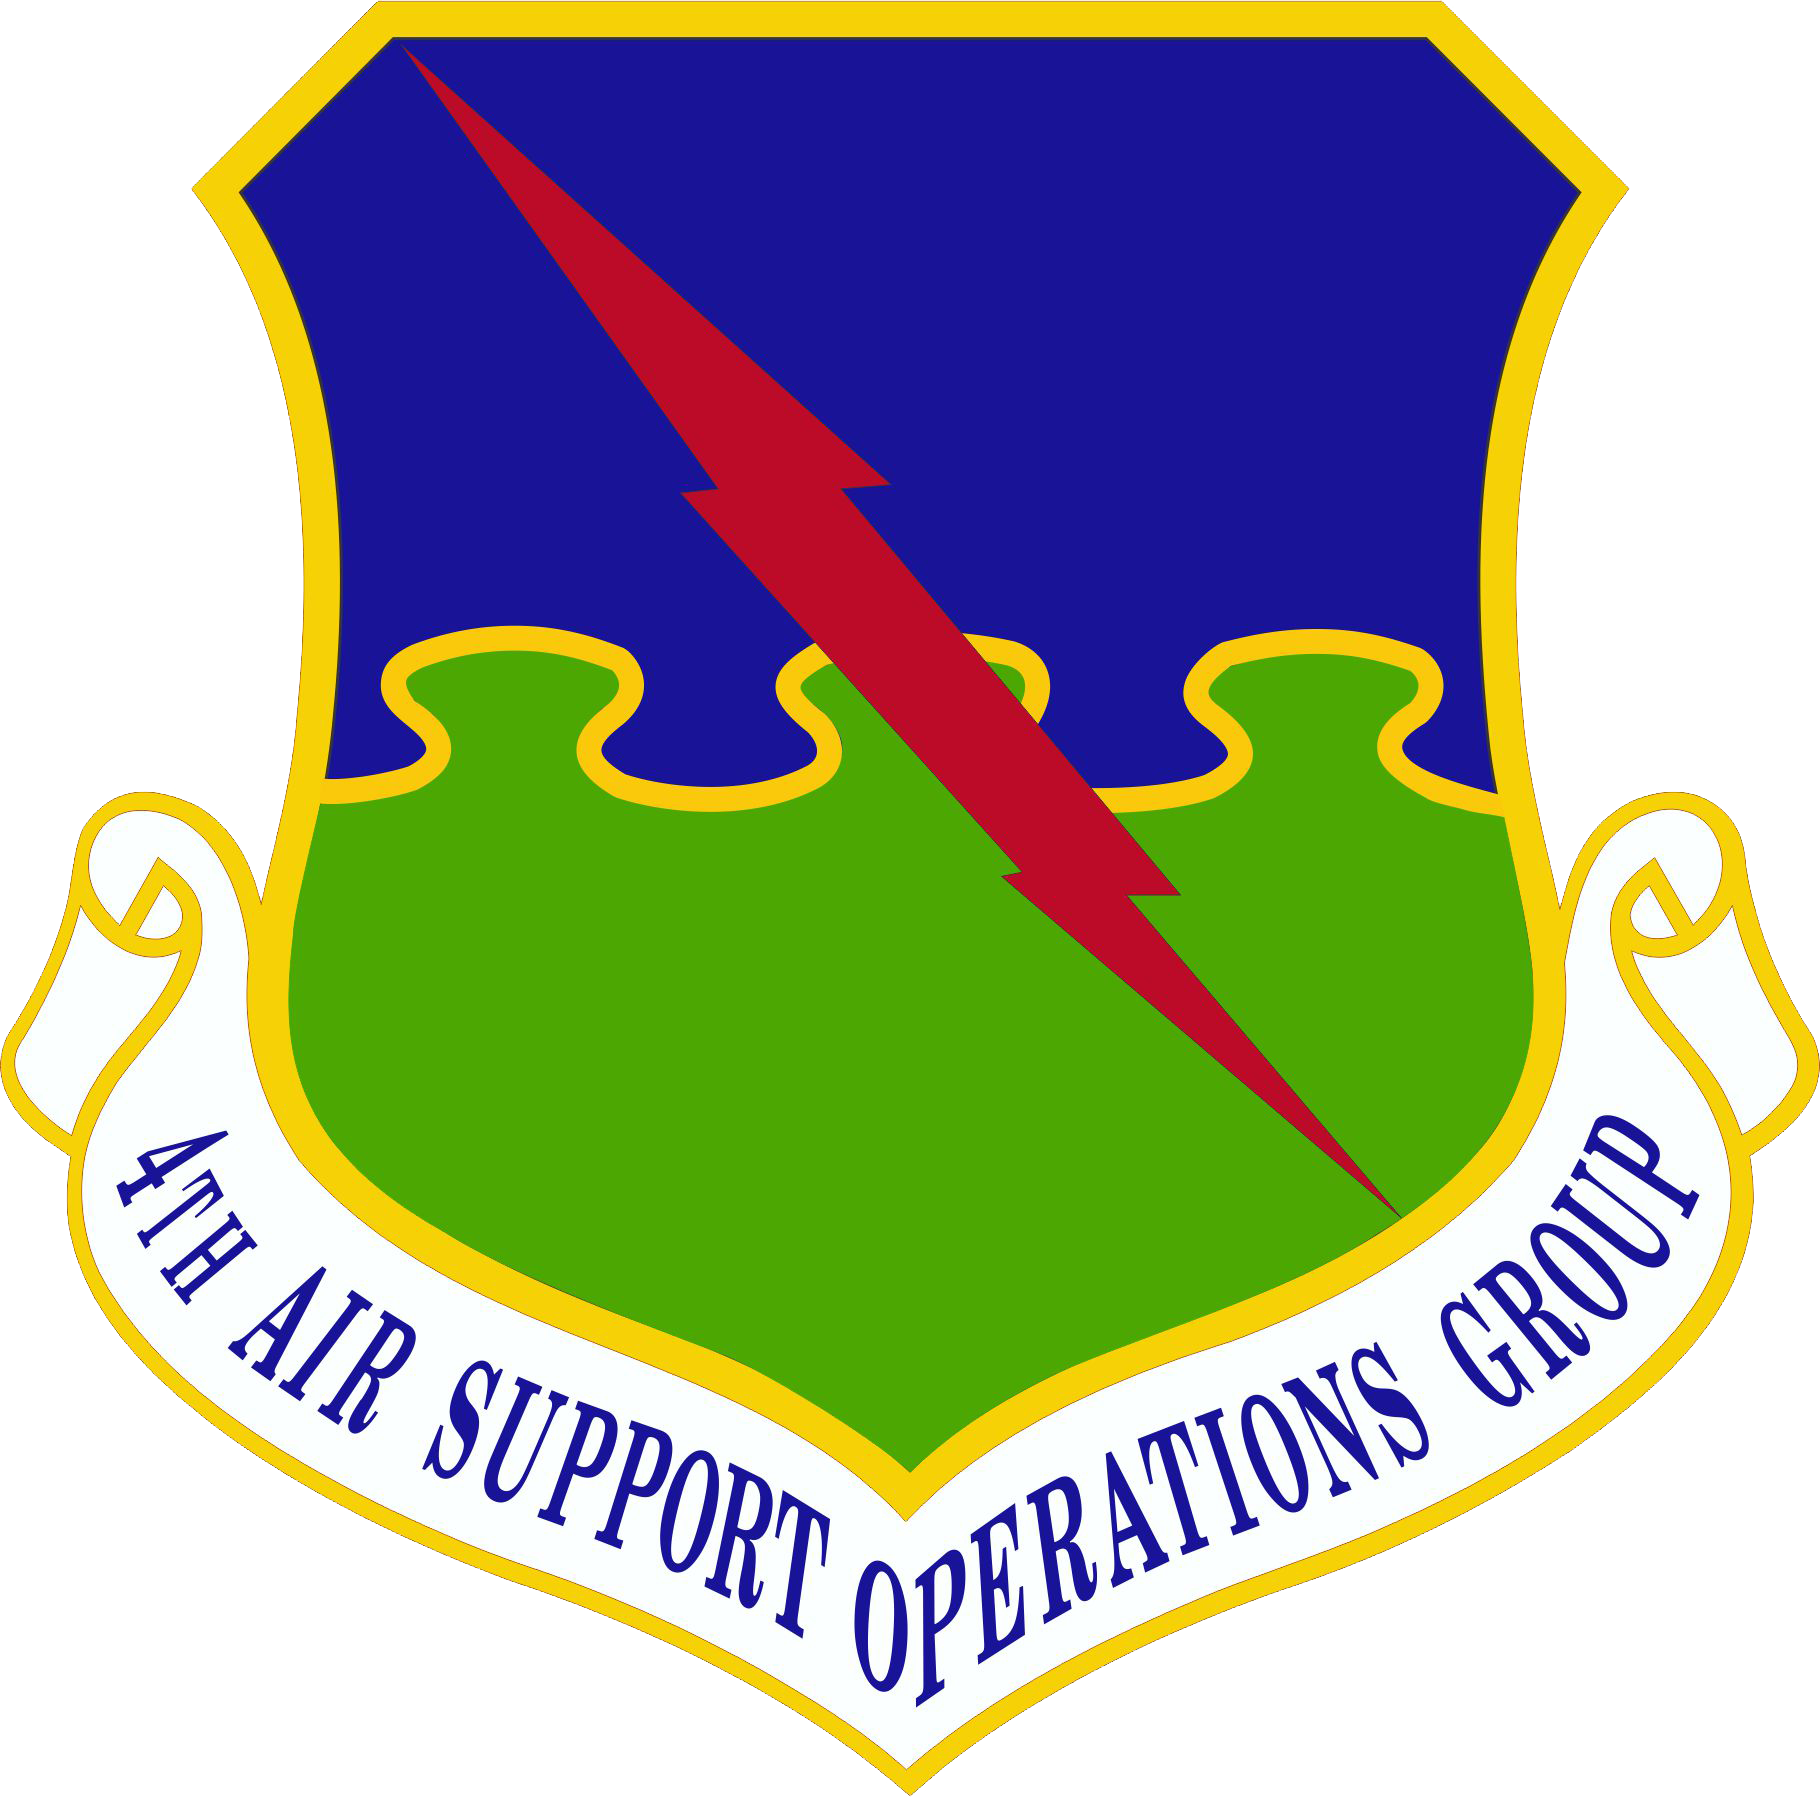 Air Support Operations Group 57